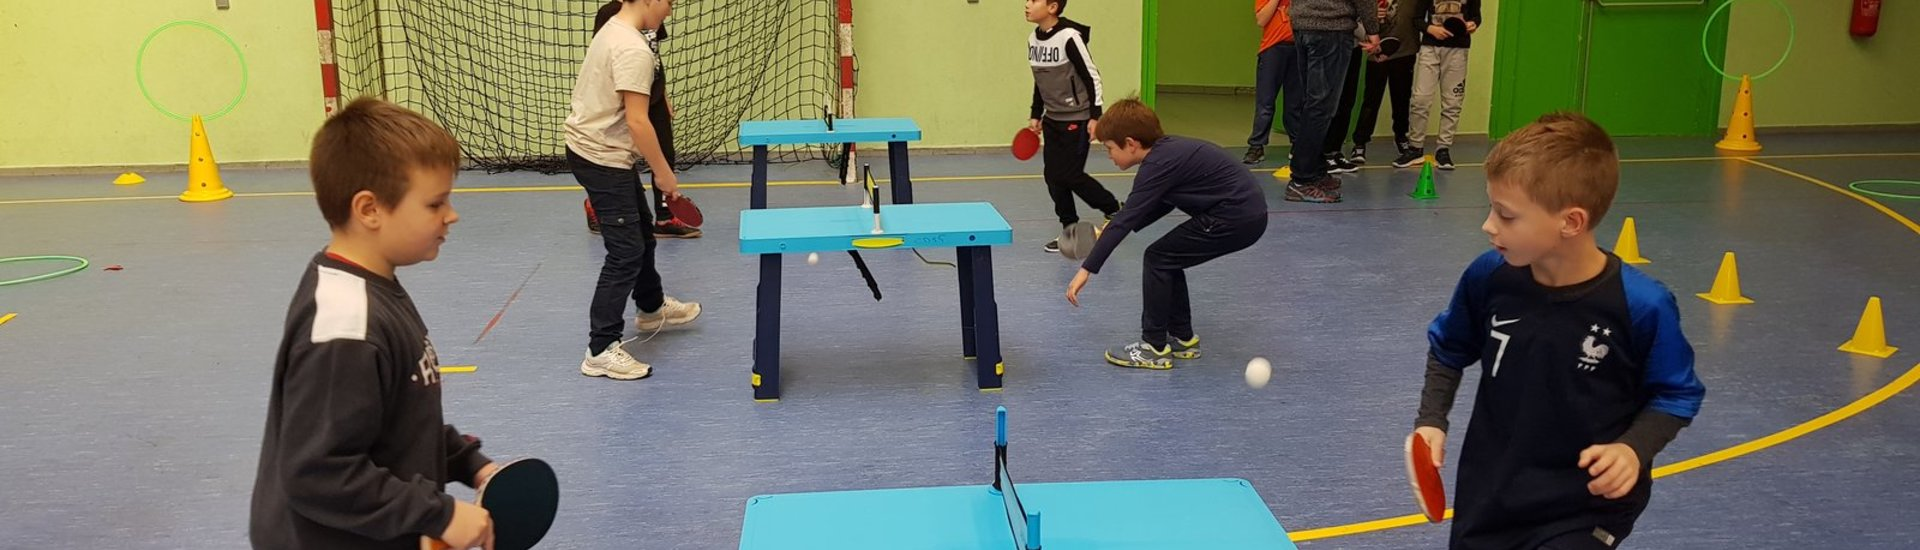 Rencontre USEP Partenariat Tennis de table n°2 C3